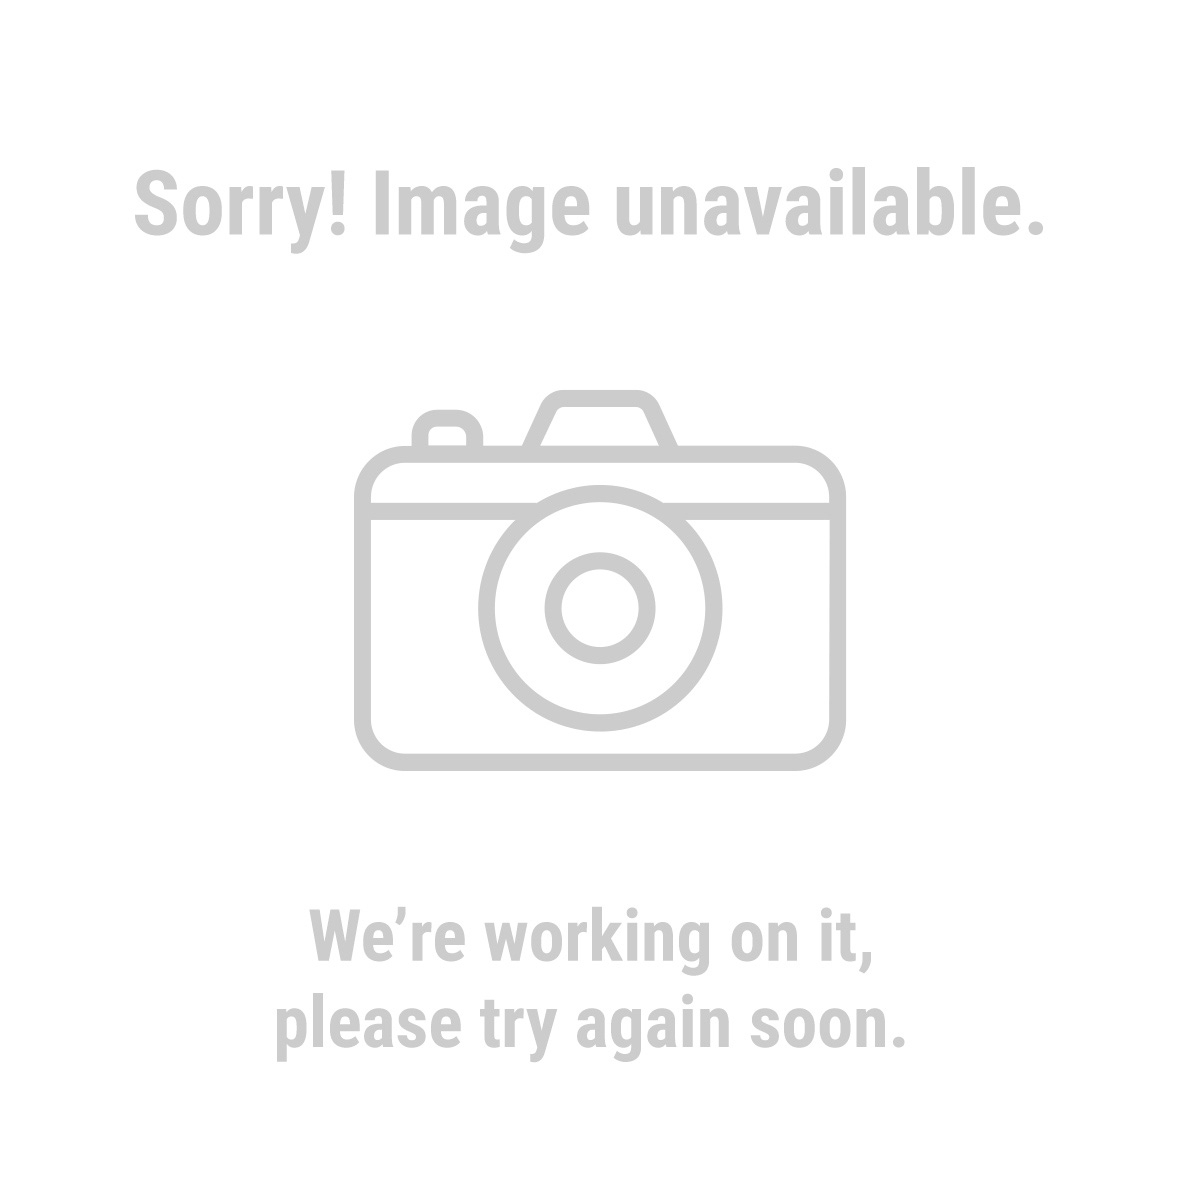 Cen-Tech 96308 6 Function Mini Digital Clamp Meter